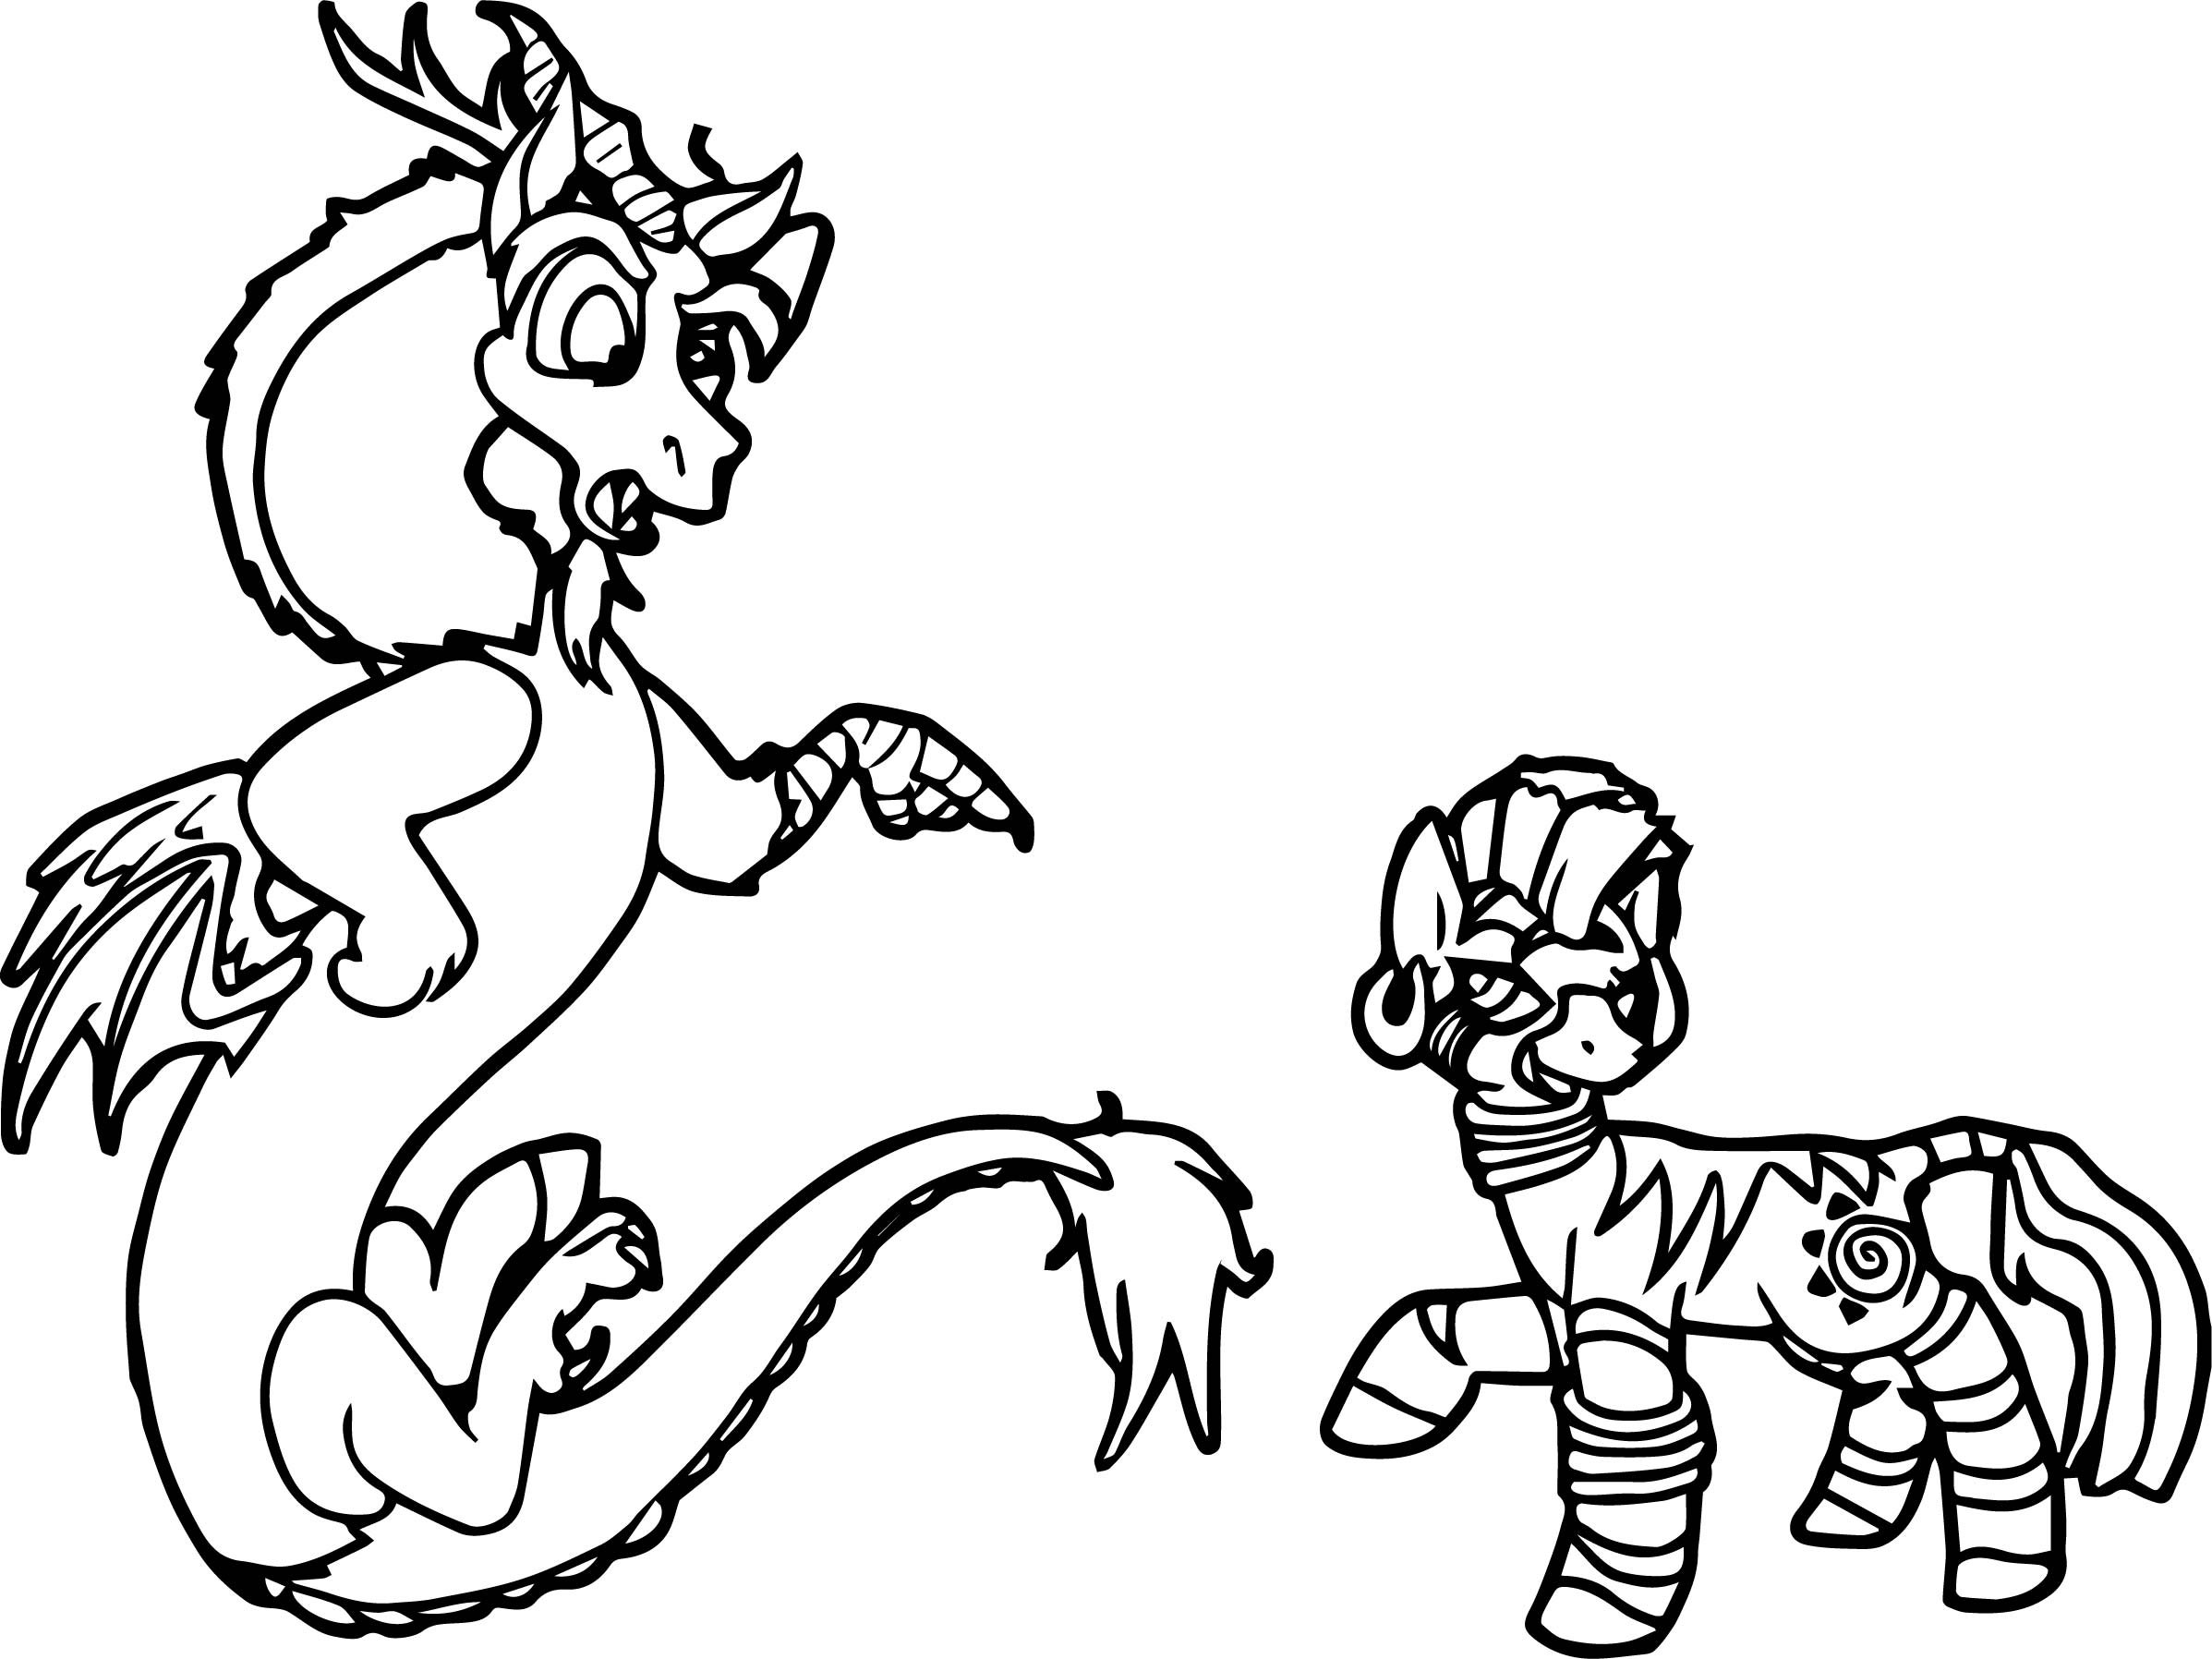 Discord Vs Zecora Who Will Win Coloring Page